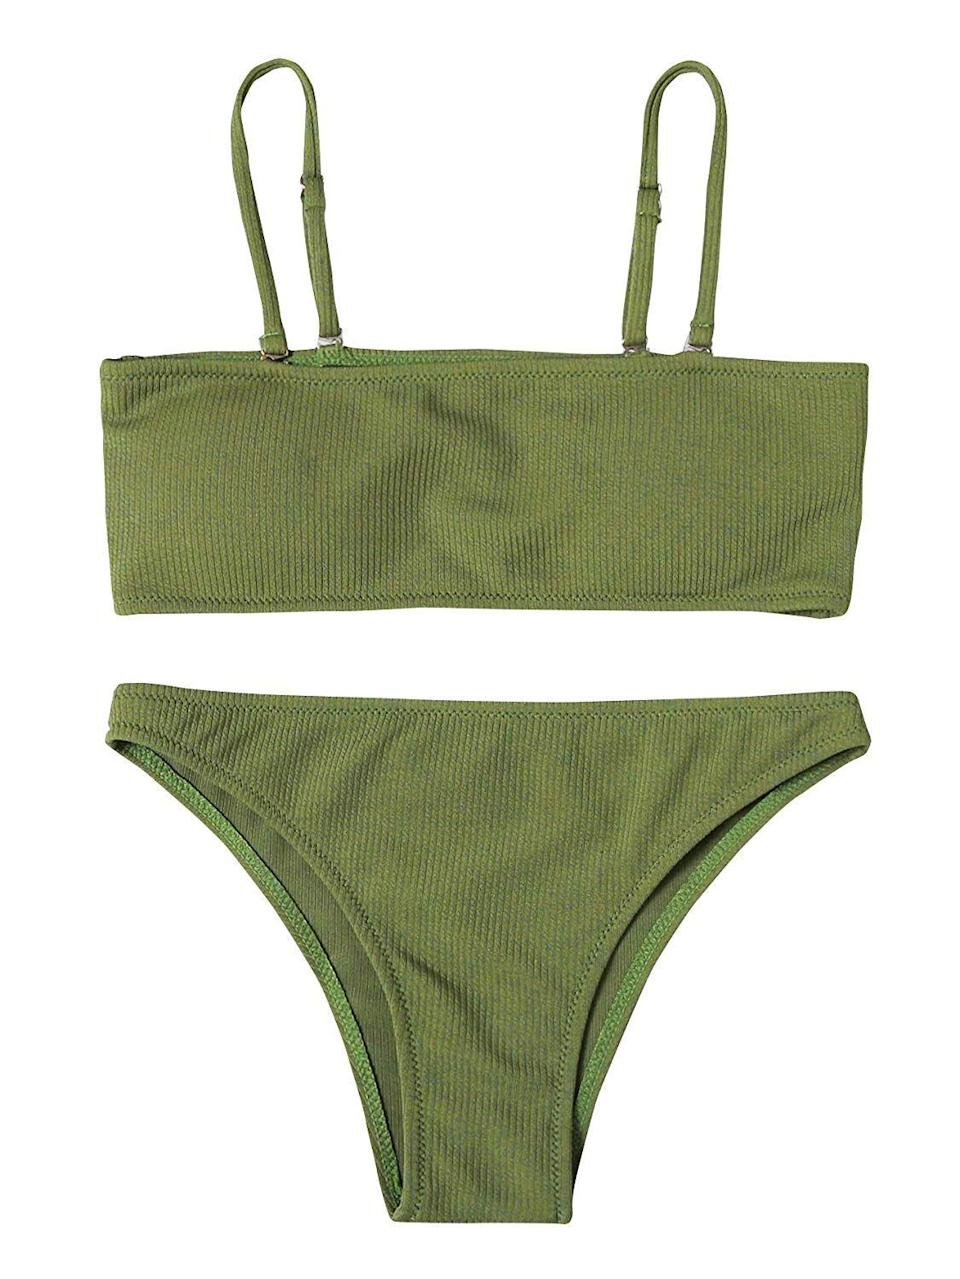 Surprise: Amazon has wildly affordable, on-trend swimwear. Available in size S to XXL.